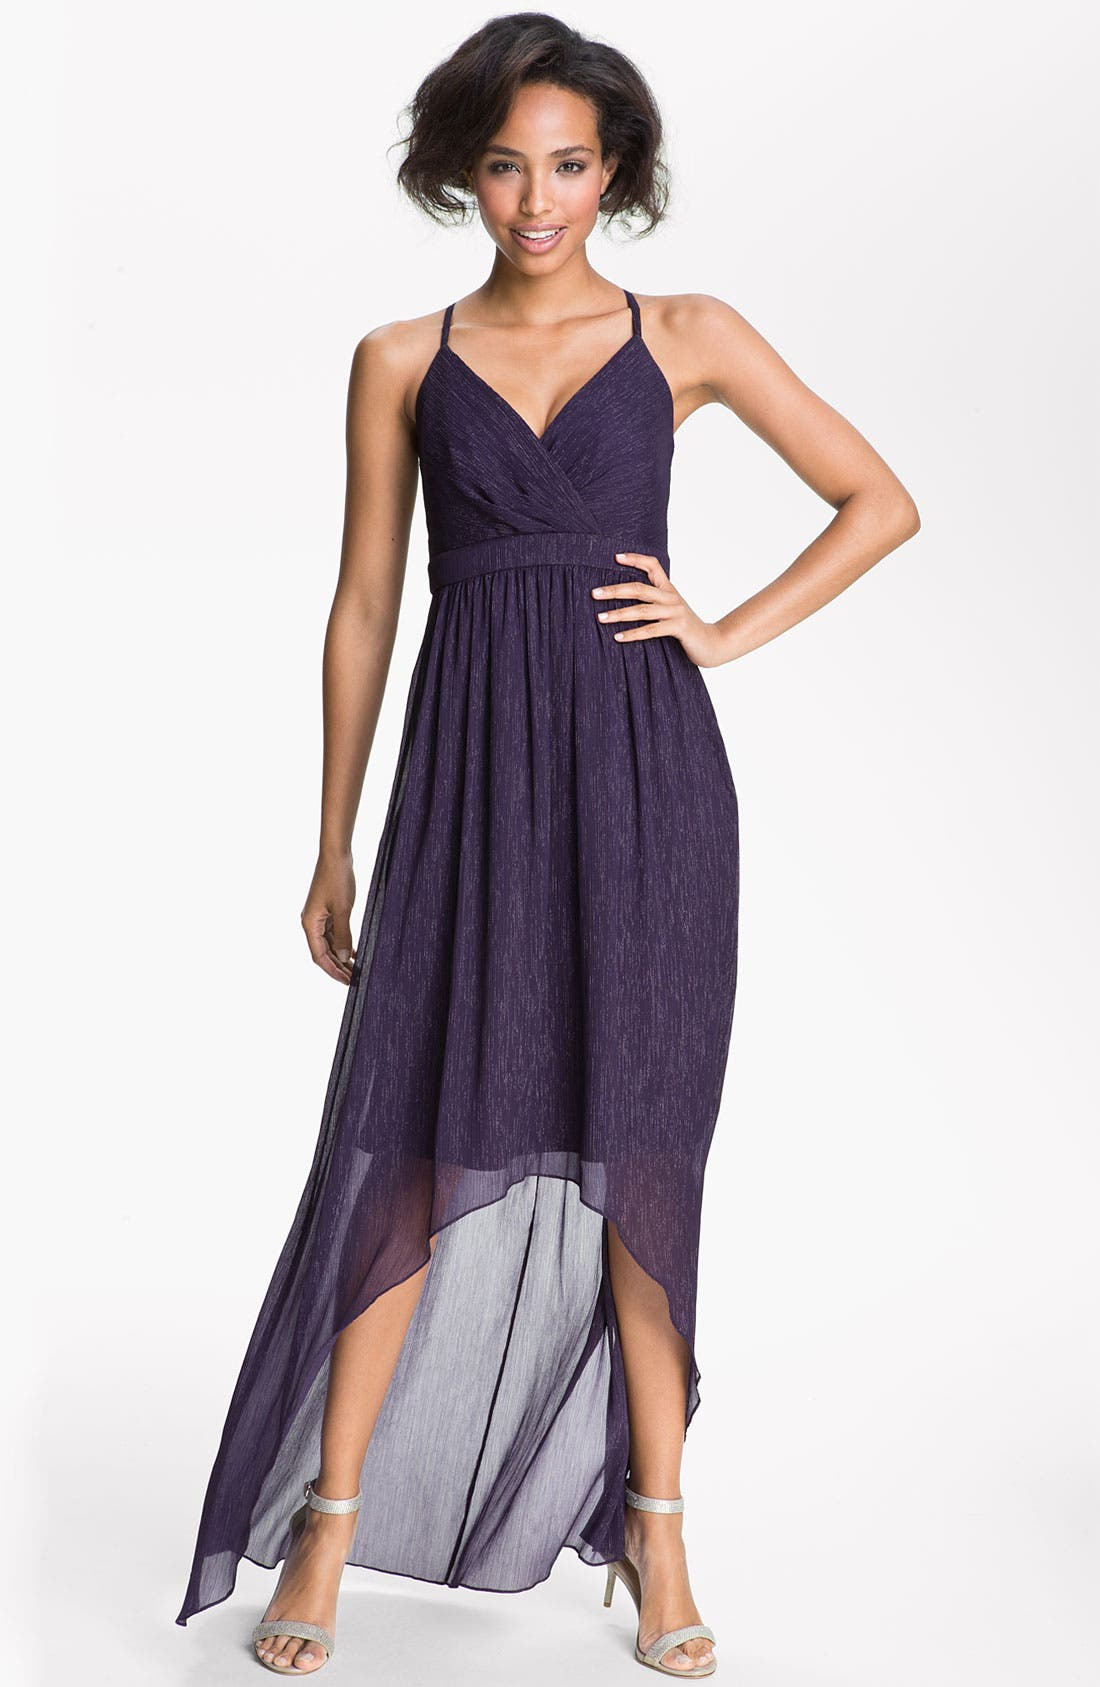 Alternate Image 1 Selected - Max & Cleo 'Sophia' Metallic Chiffon High/Low Dress